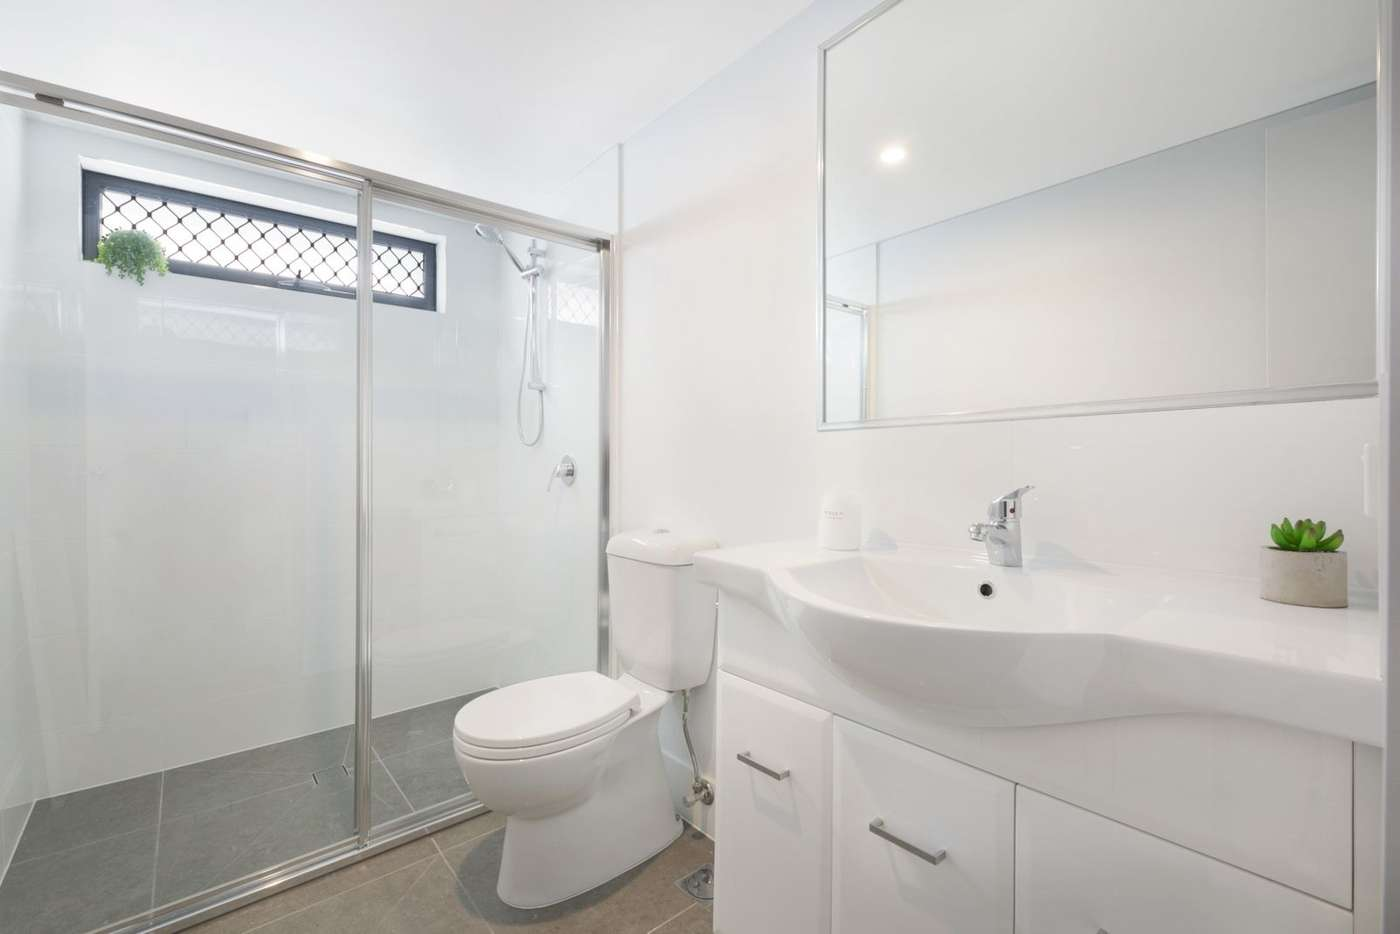 Sixth view of Homely unit listing, 7/23 Minnie Street, Southport QLD 4215